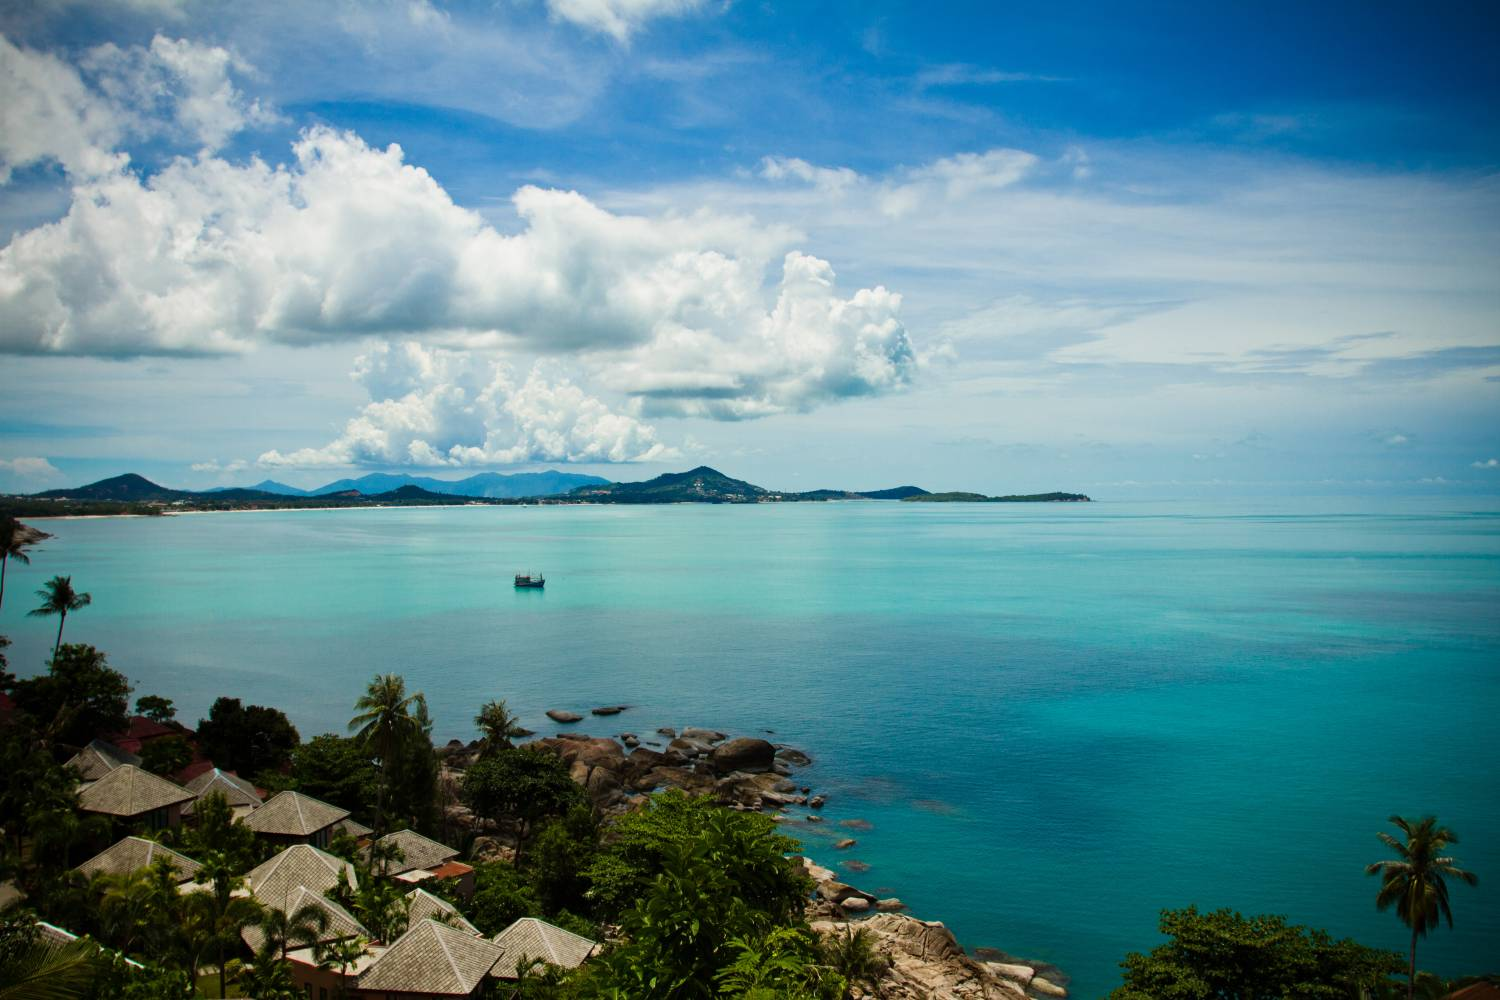 A view of Koh Samui's shoreline on the road between Lamai and Cheweng.